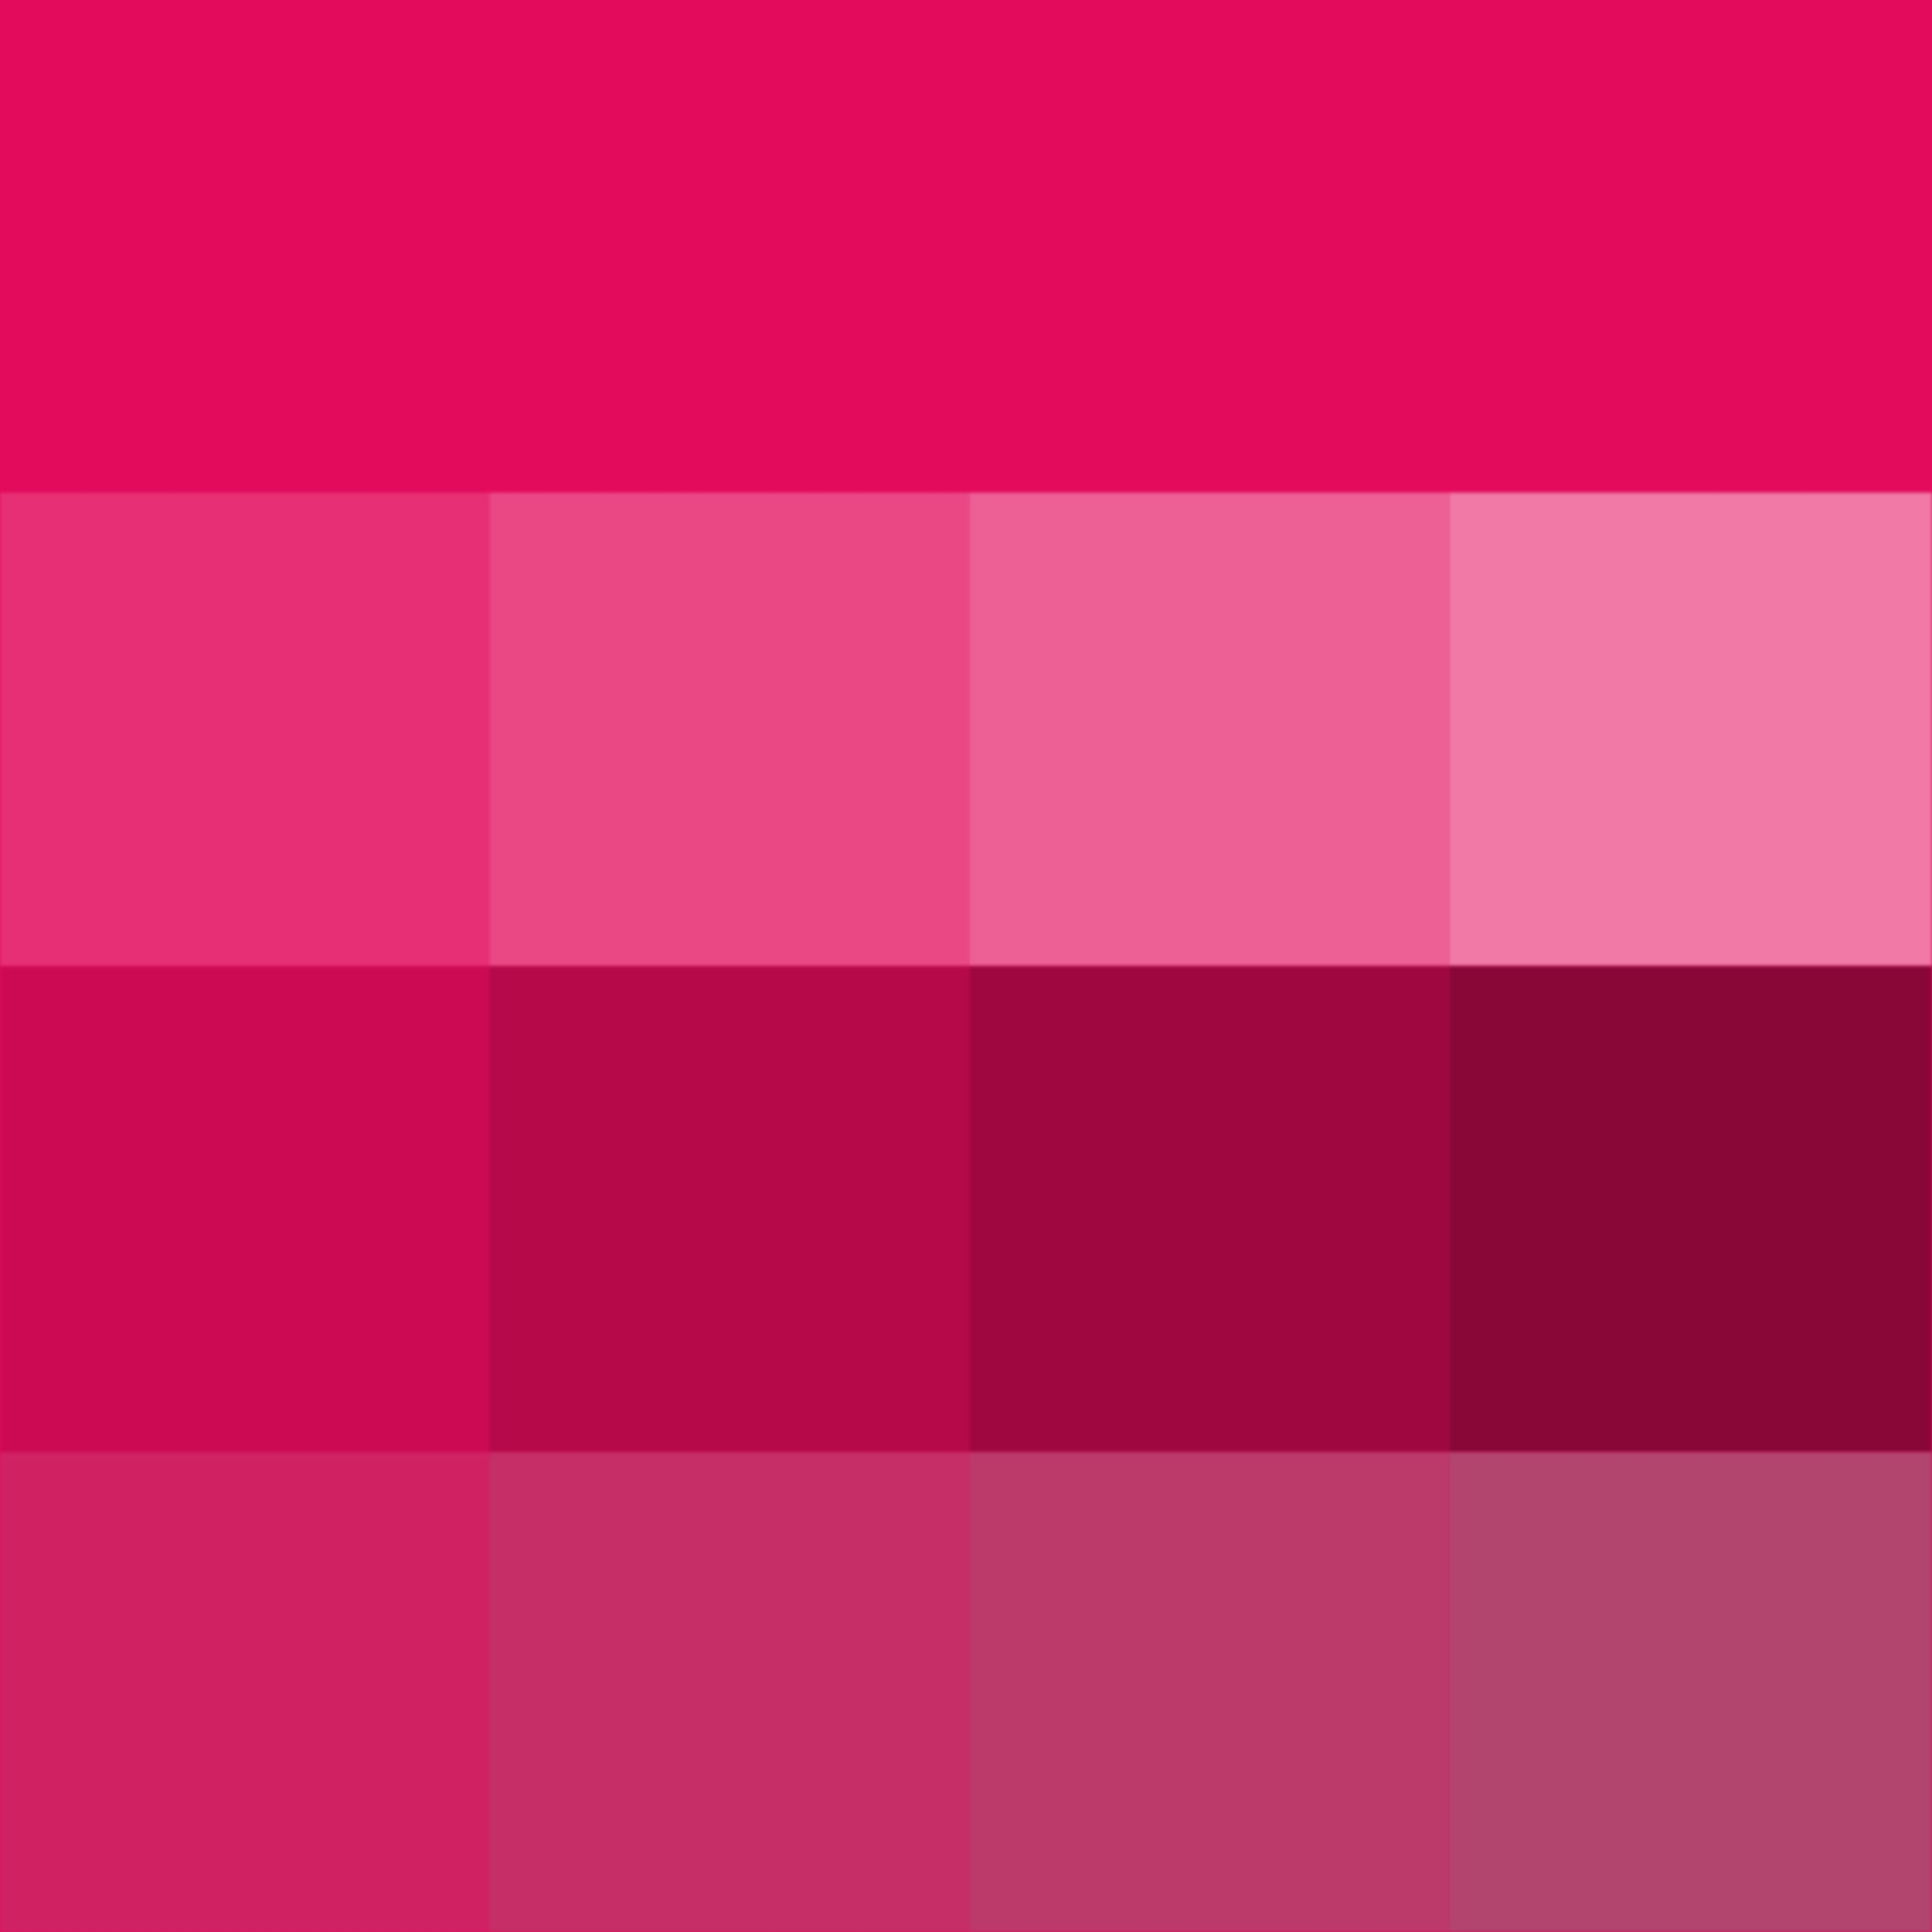 Raspberry Shades Hue Pure Color With Tints White Black And Tones Grey Which Desaturates The